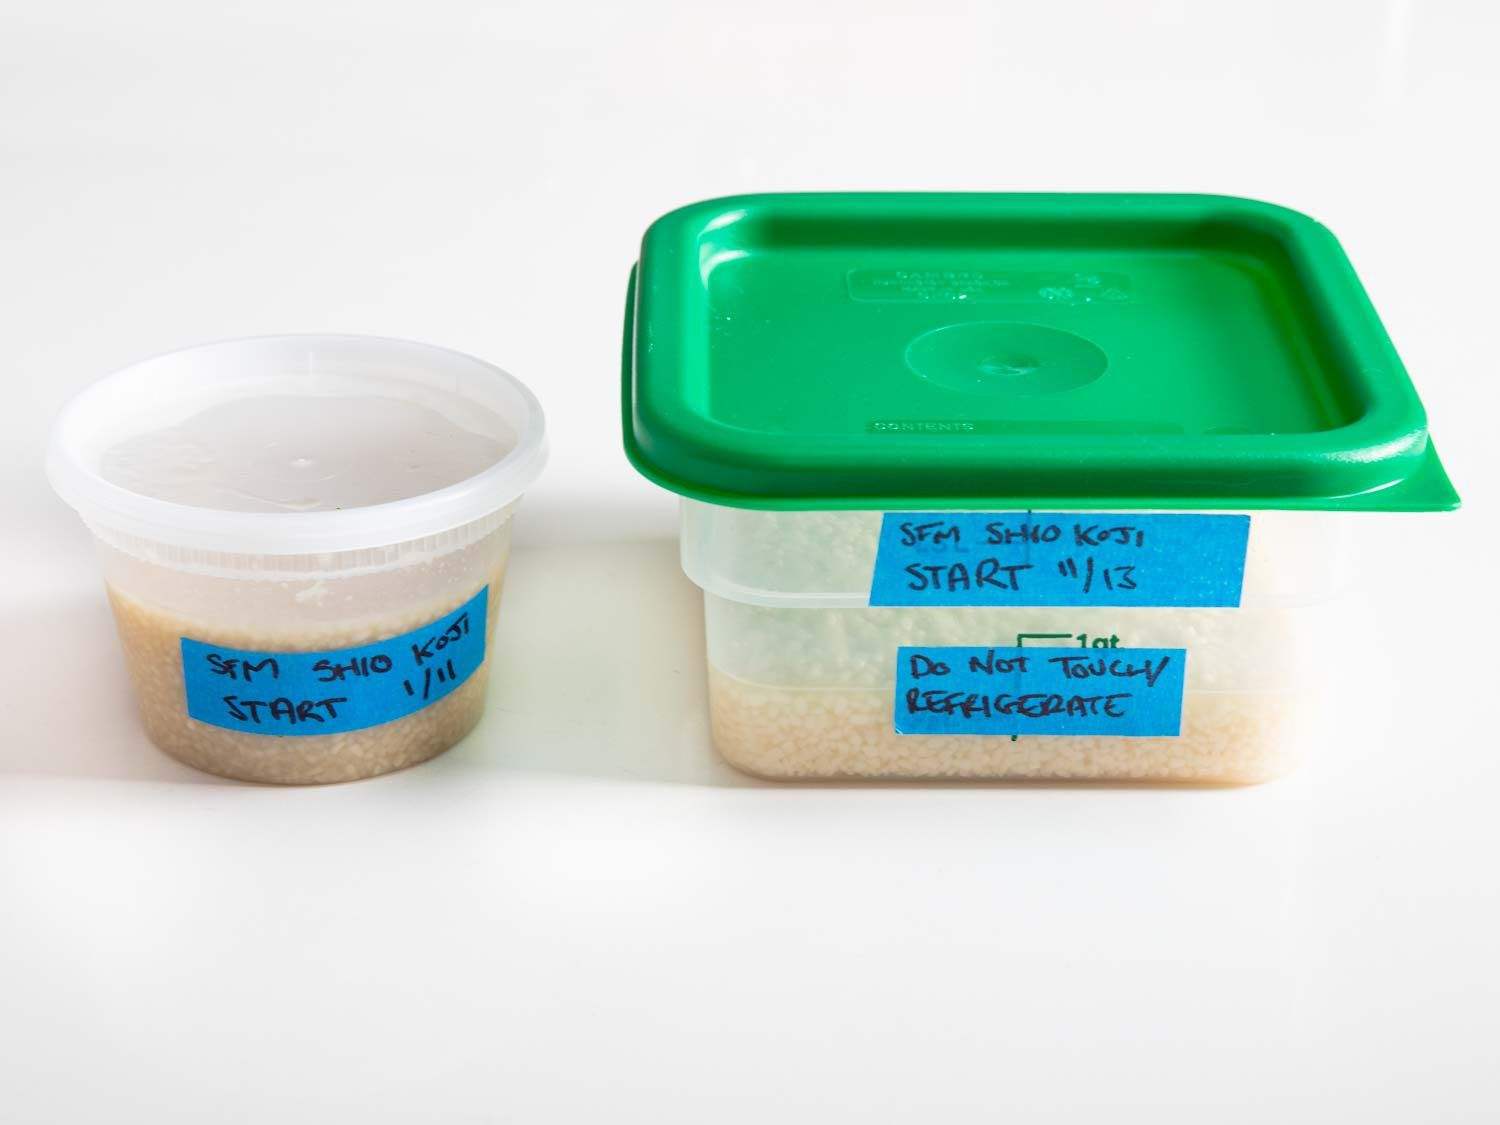 Side view closeup of two containers of shio koji.